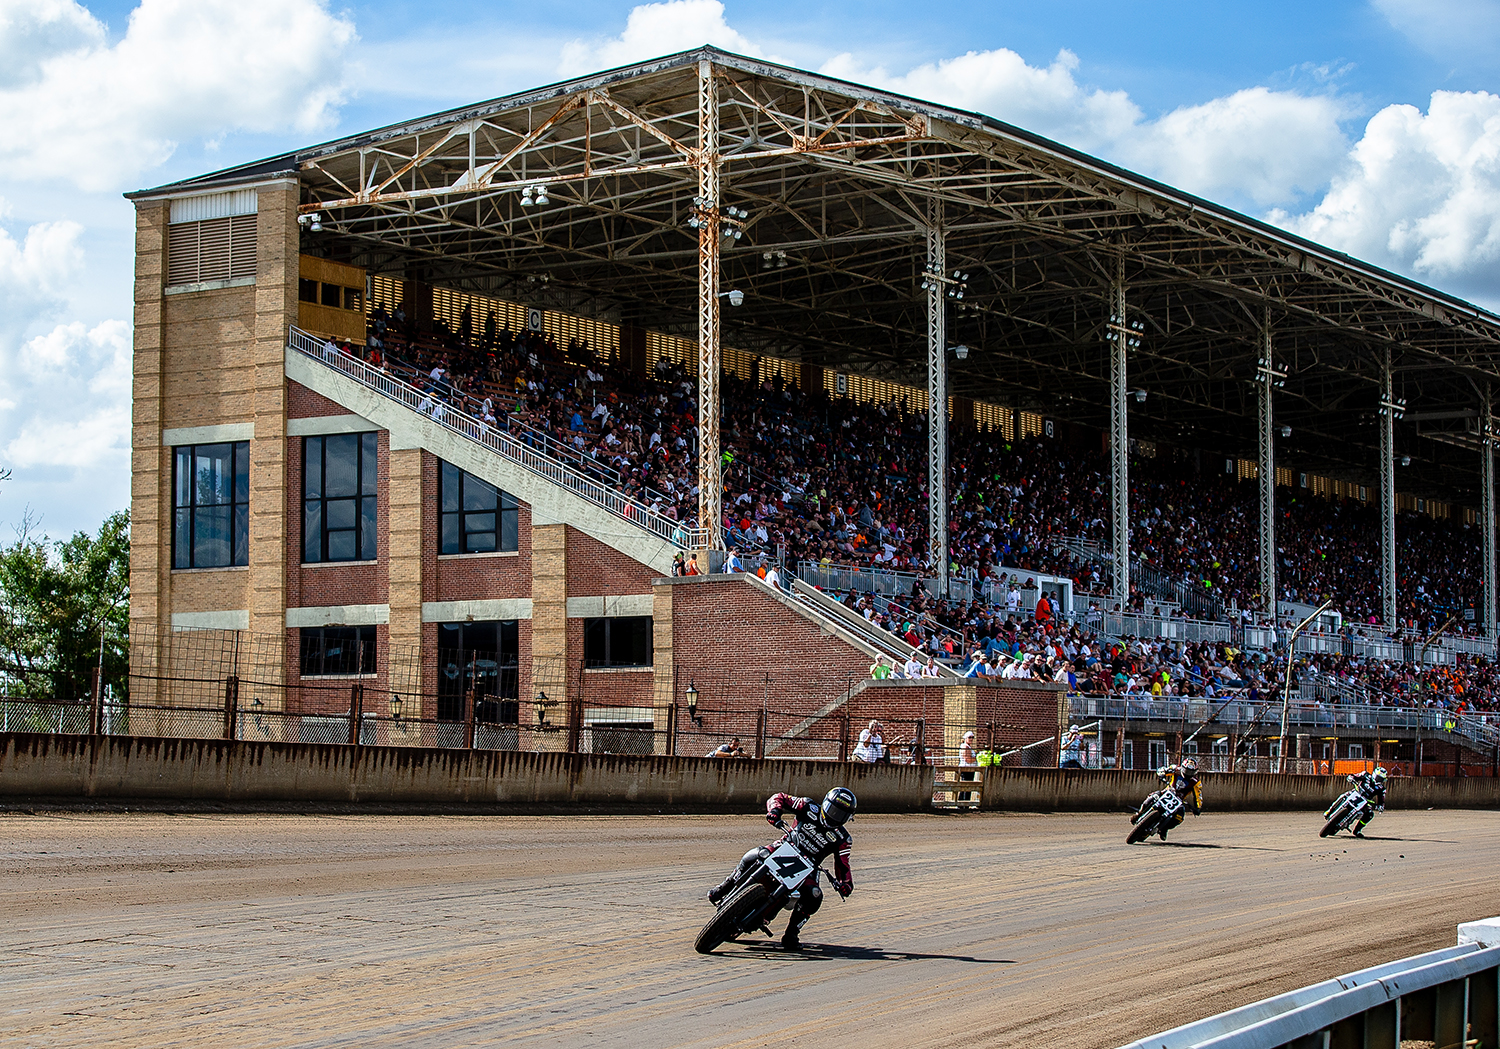 Bryan Smith leads the field into turn one on his Indian Scout FTR750 during the American Flat Track Springfield Mile II at the Illinois State Fairgrounds, Sunday, Sept. 2, 2018, in Springfield, Ill. [Justin L. Fowler/The State Journal-Register]